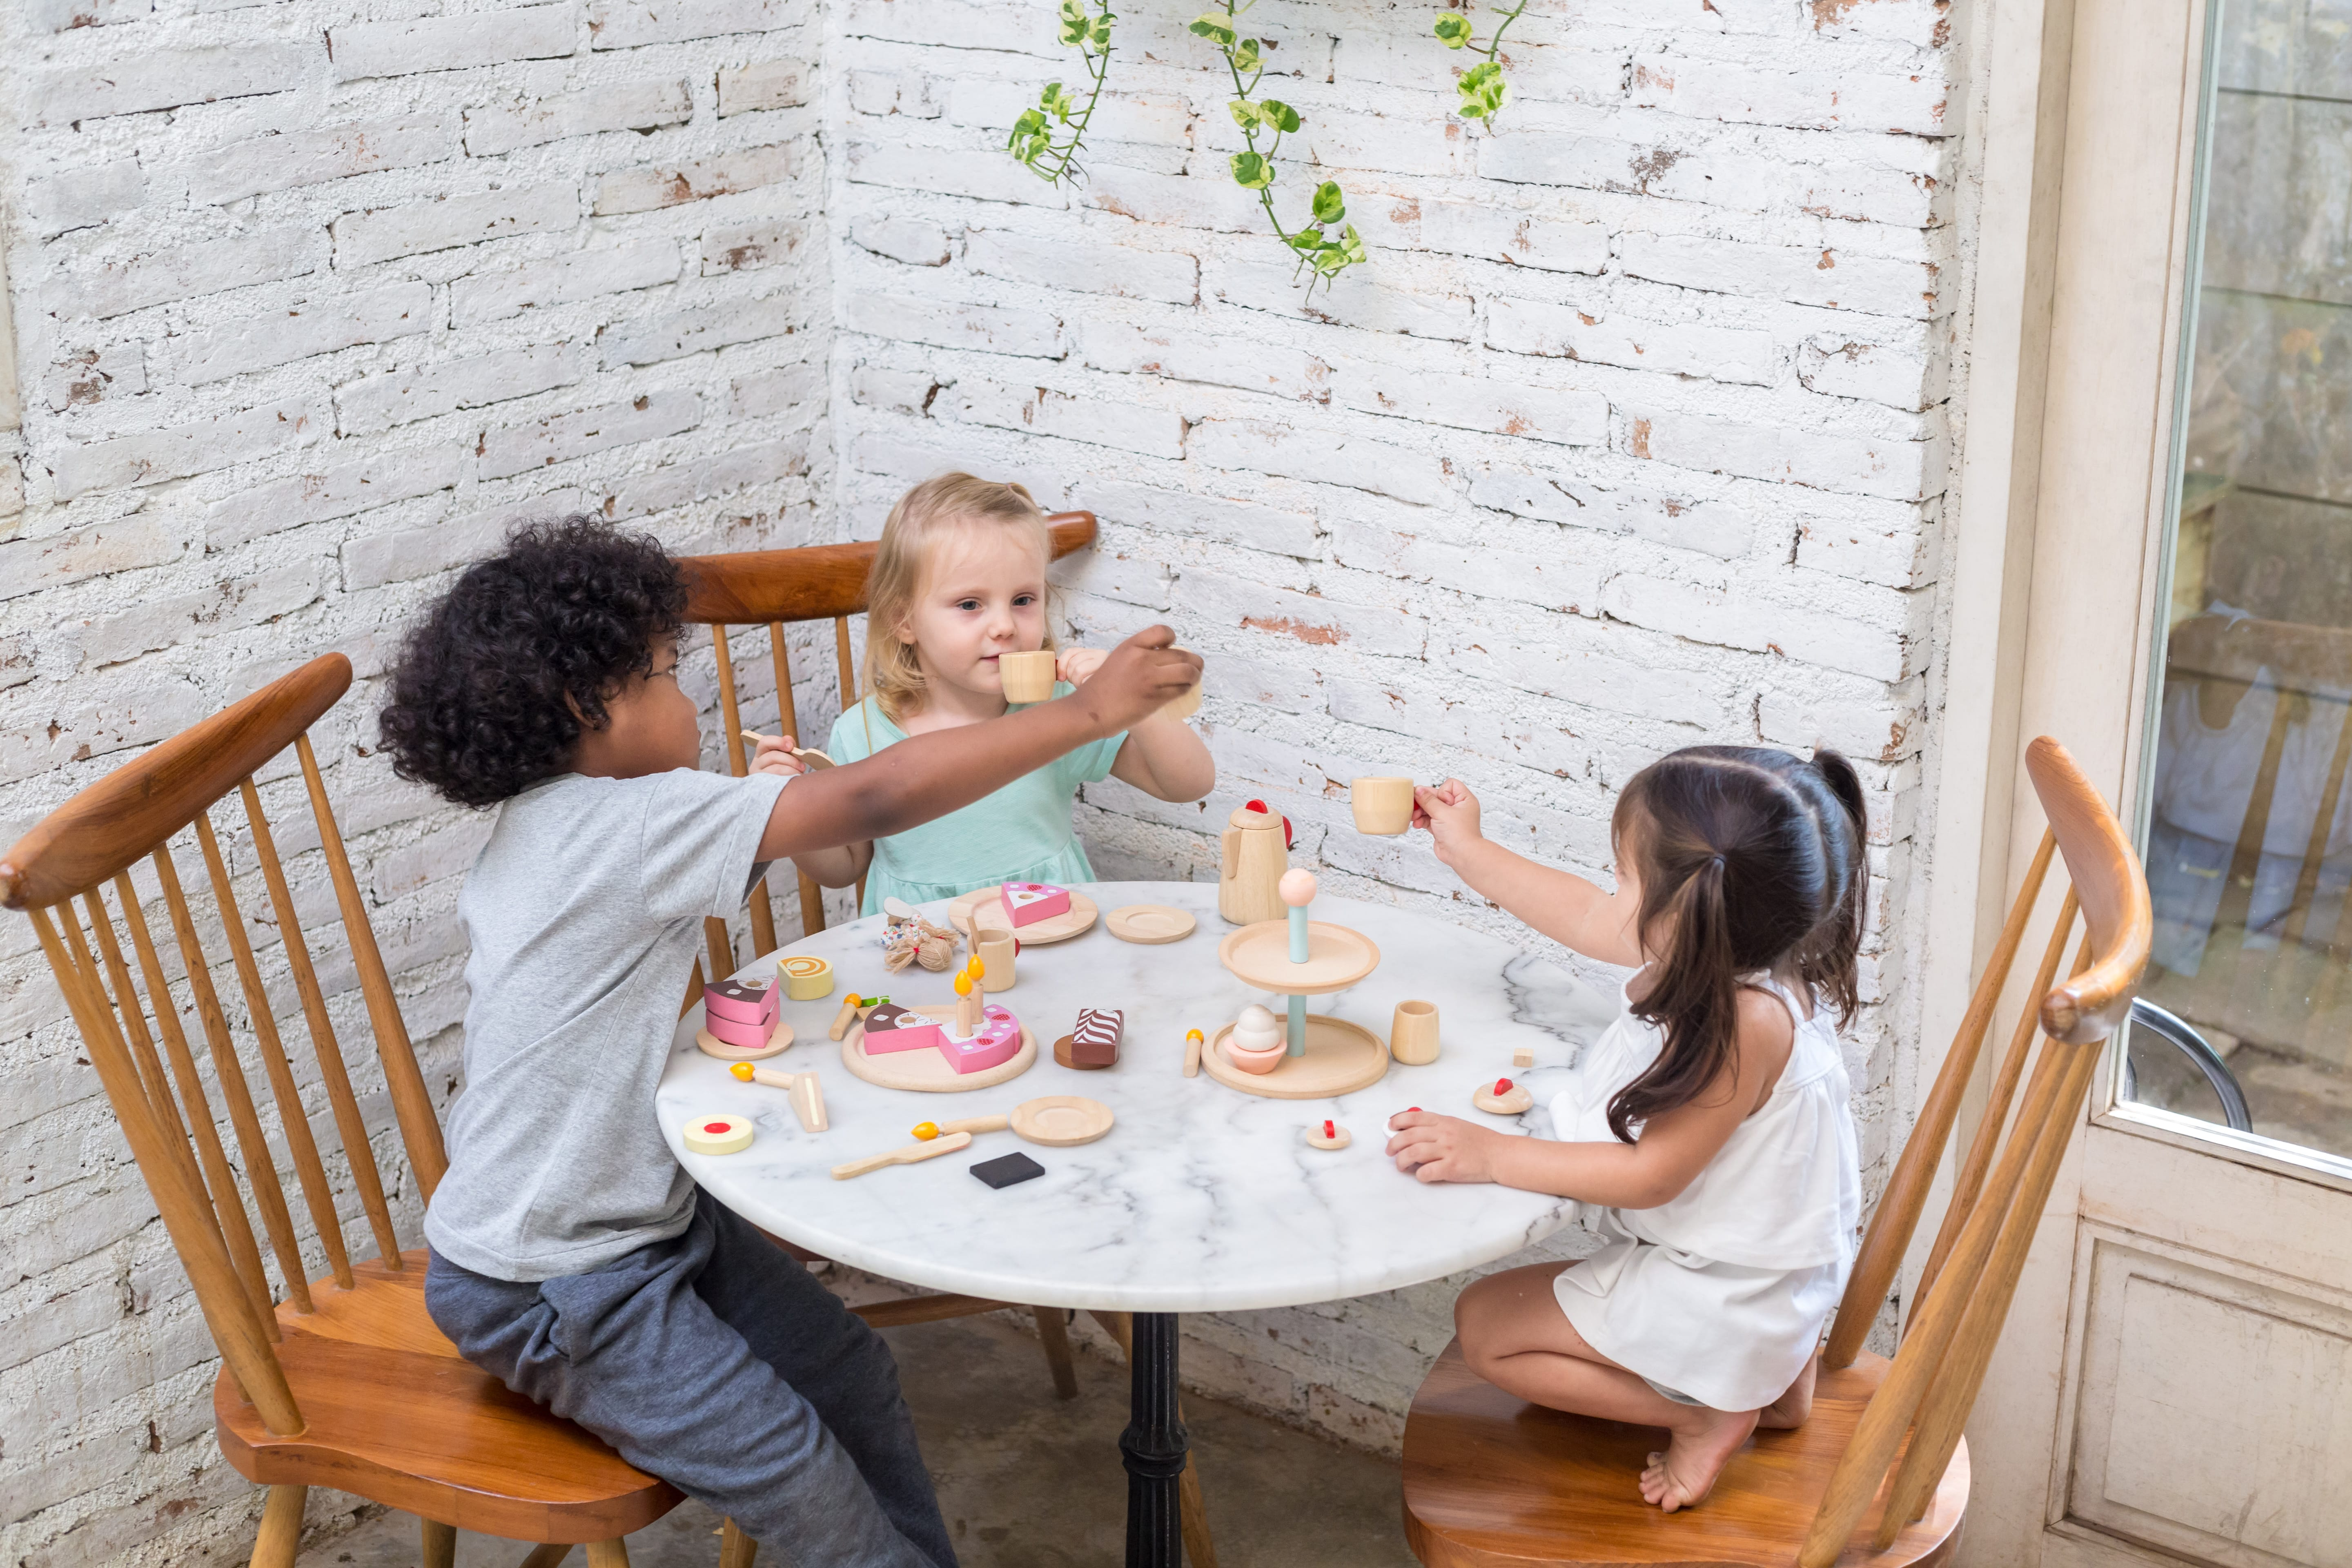 3433_PlanToys_TEA_SET_Pretend_Play_Fine_Motor_Imagination_Social_Language_and_Communications_Coordination_2yrs_3yrs_Wooden_toys_Education_toys_Safety_Toys_Non-toxic_5.jpg